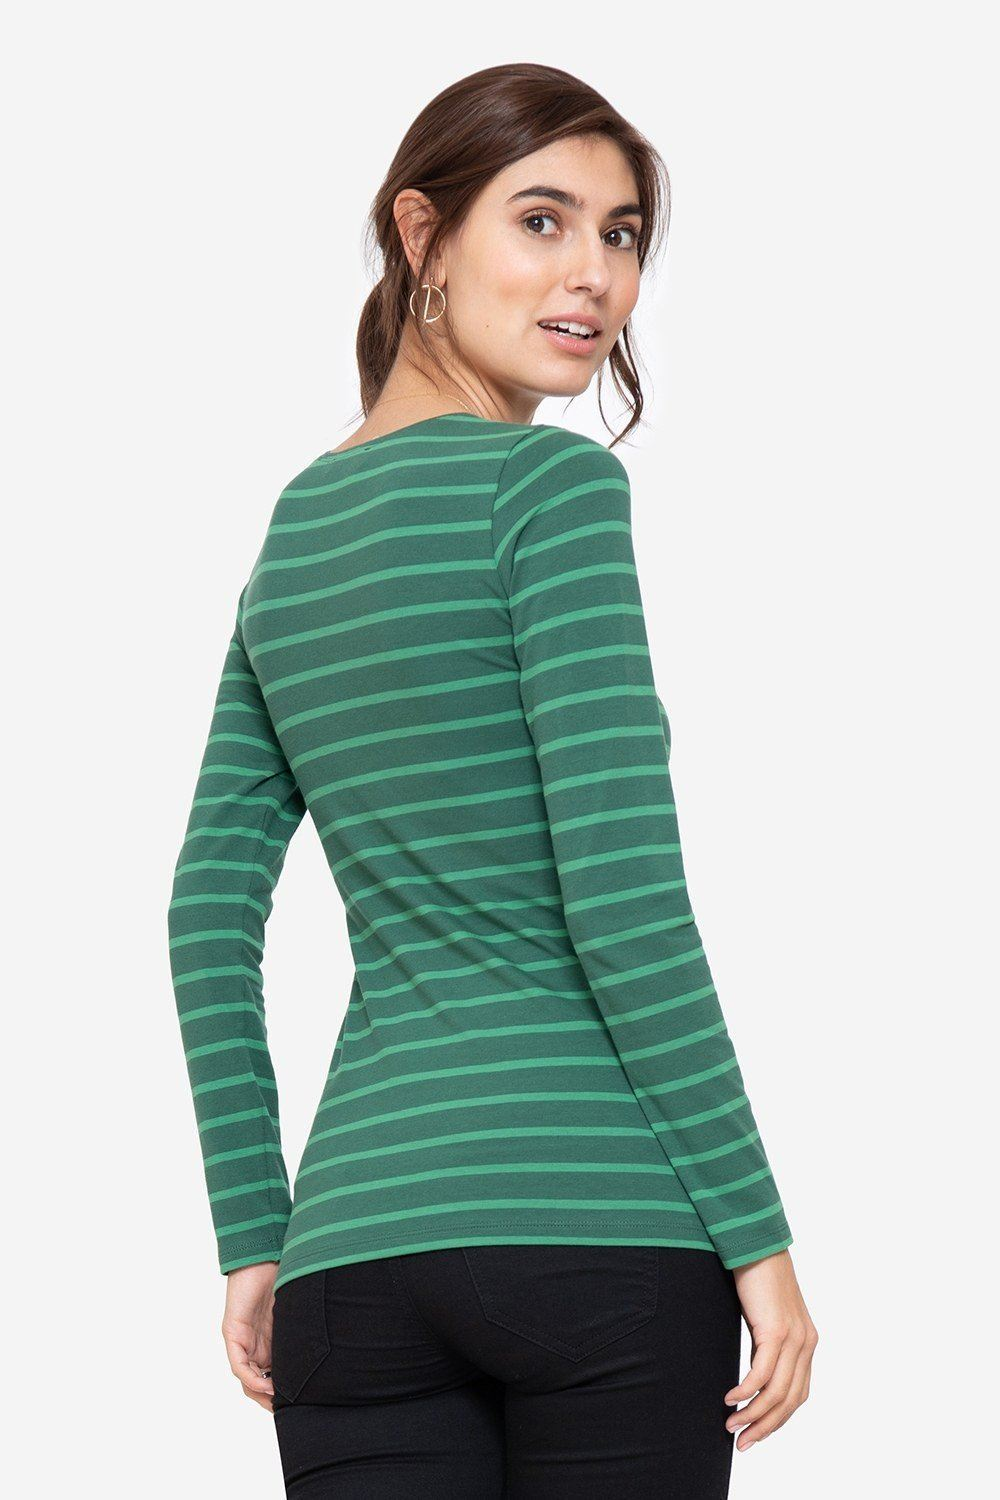 Green nursing blouse with green stripes, seen from behind